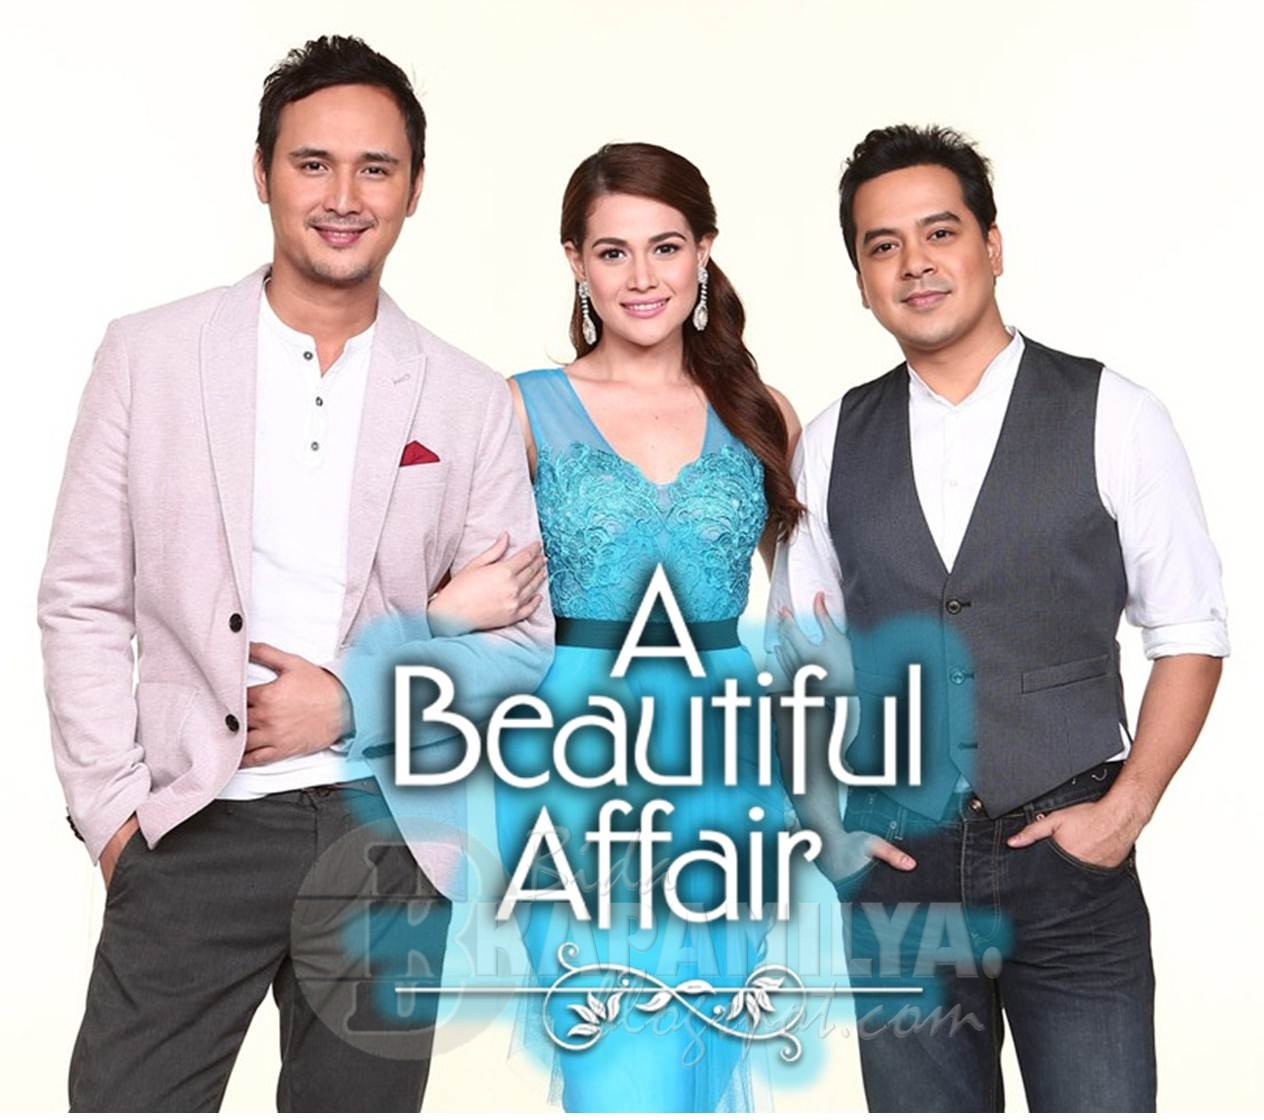 A BEAUTIFUL AFFAIR - NOV. 01, 2012 PART 2/4